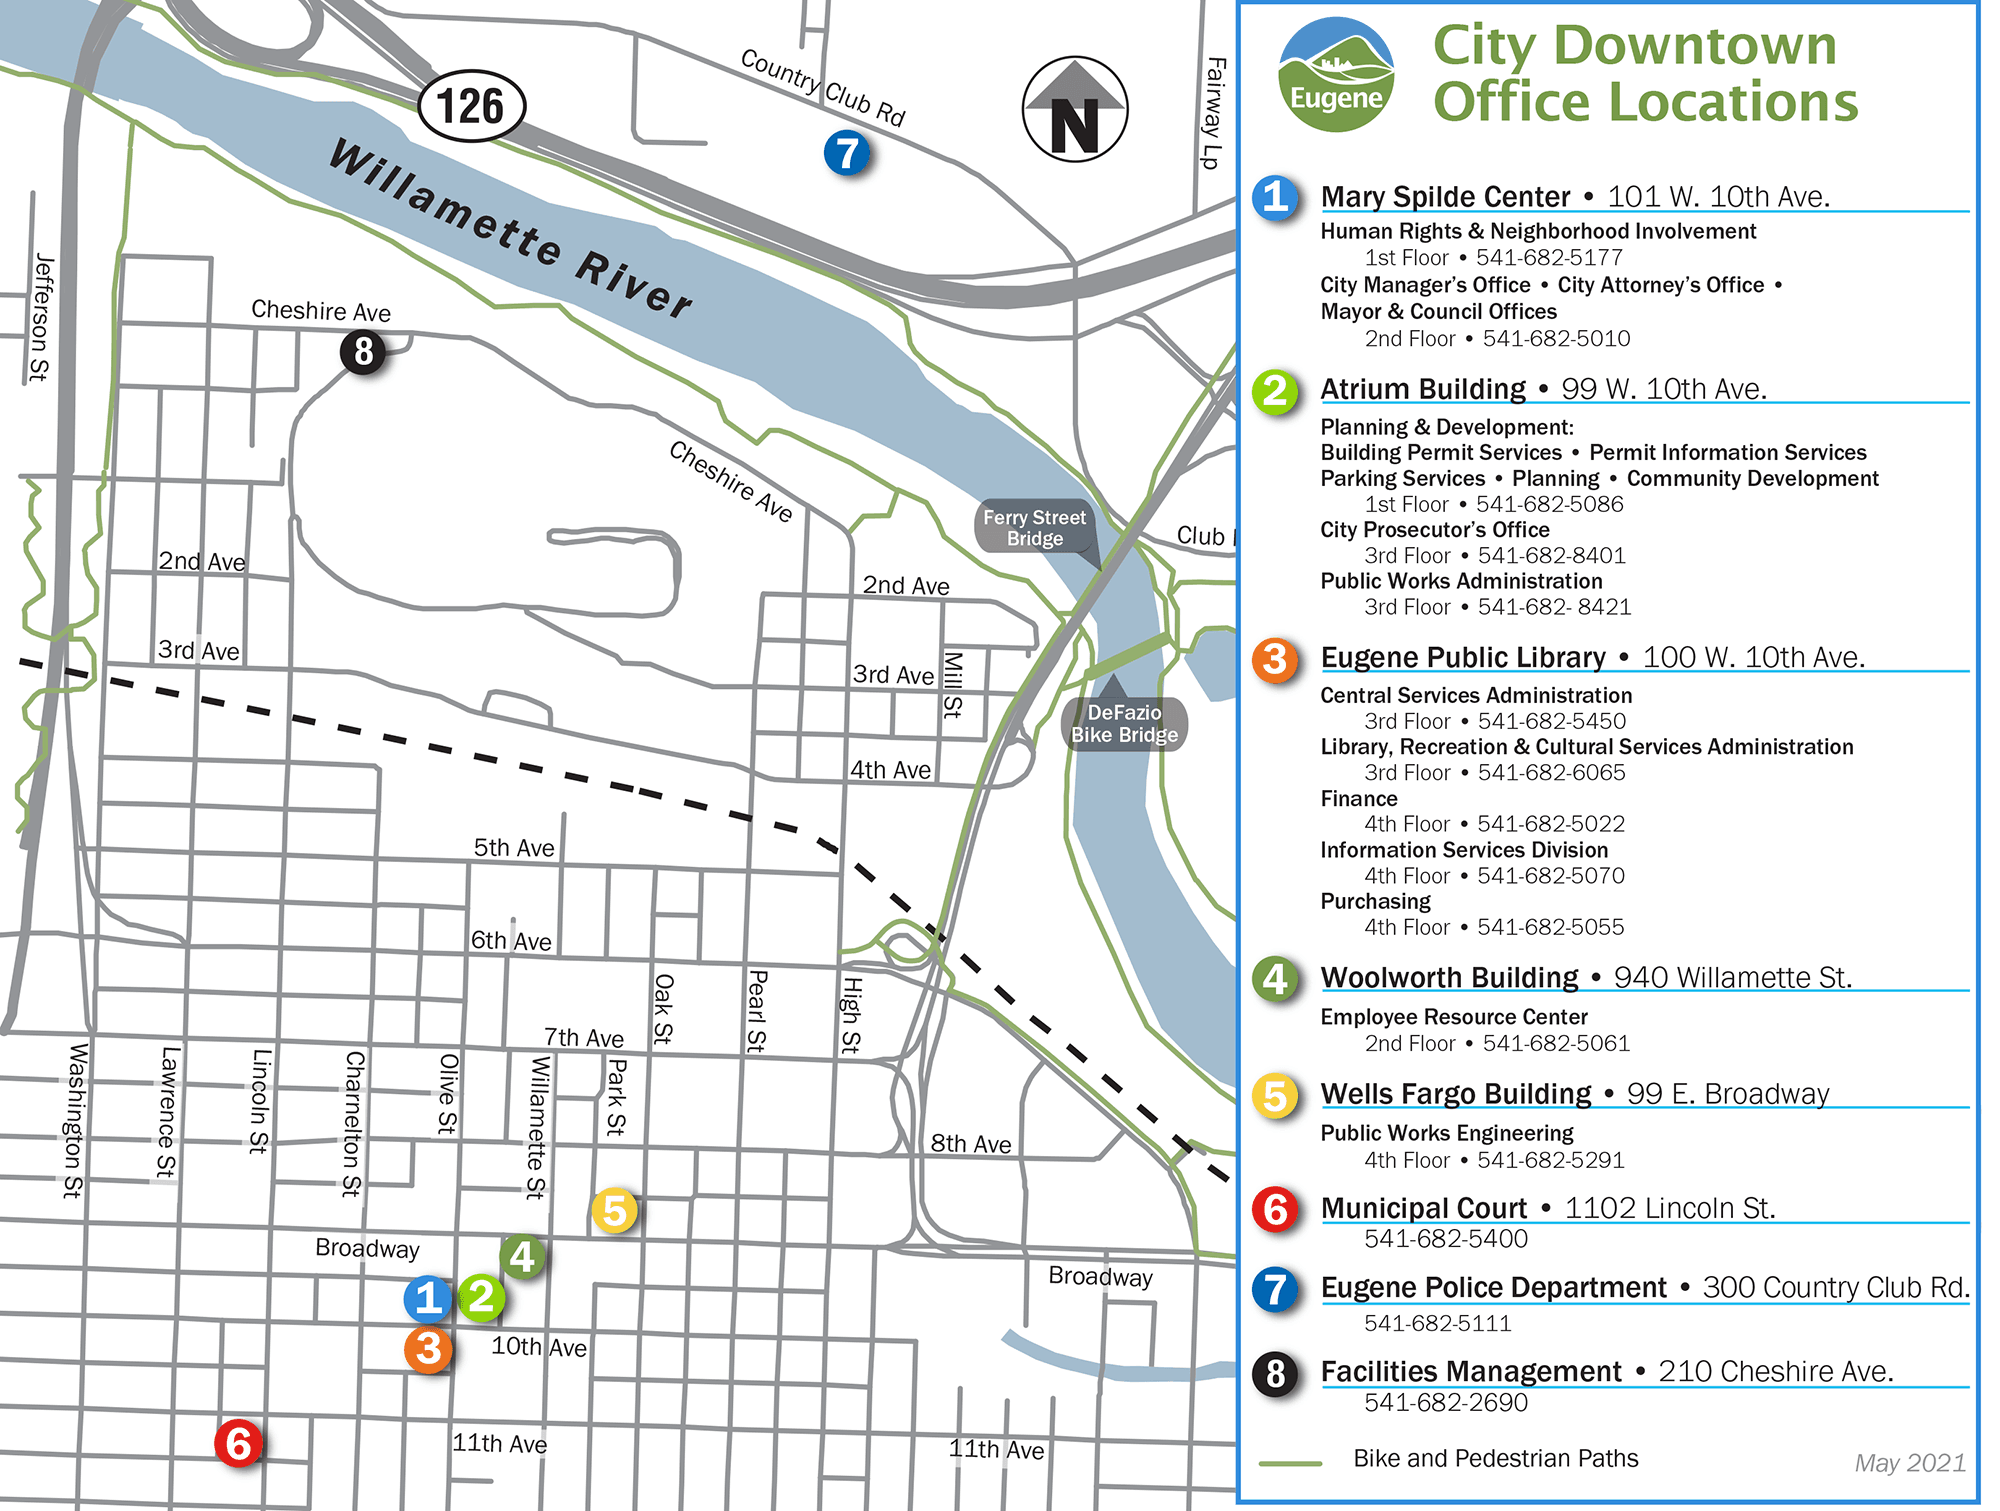 City of Eugene Offices Map